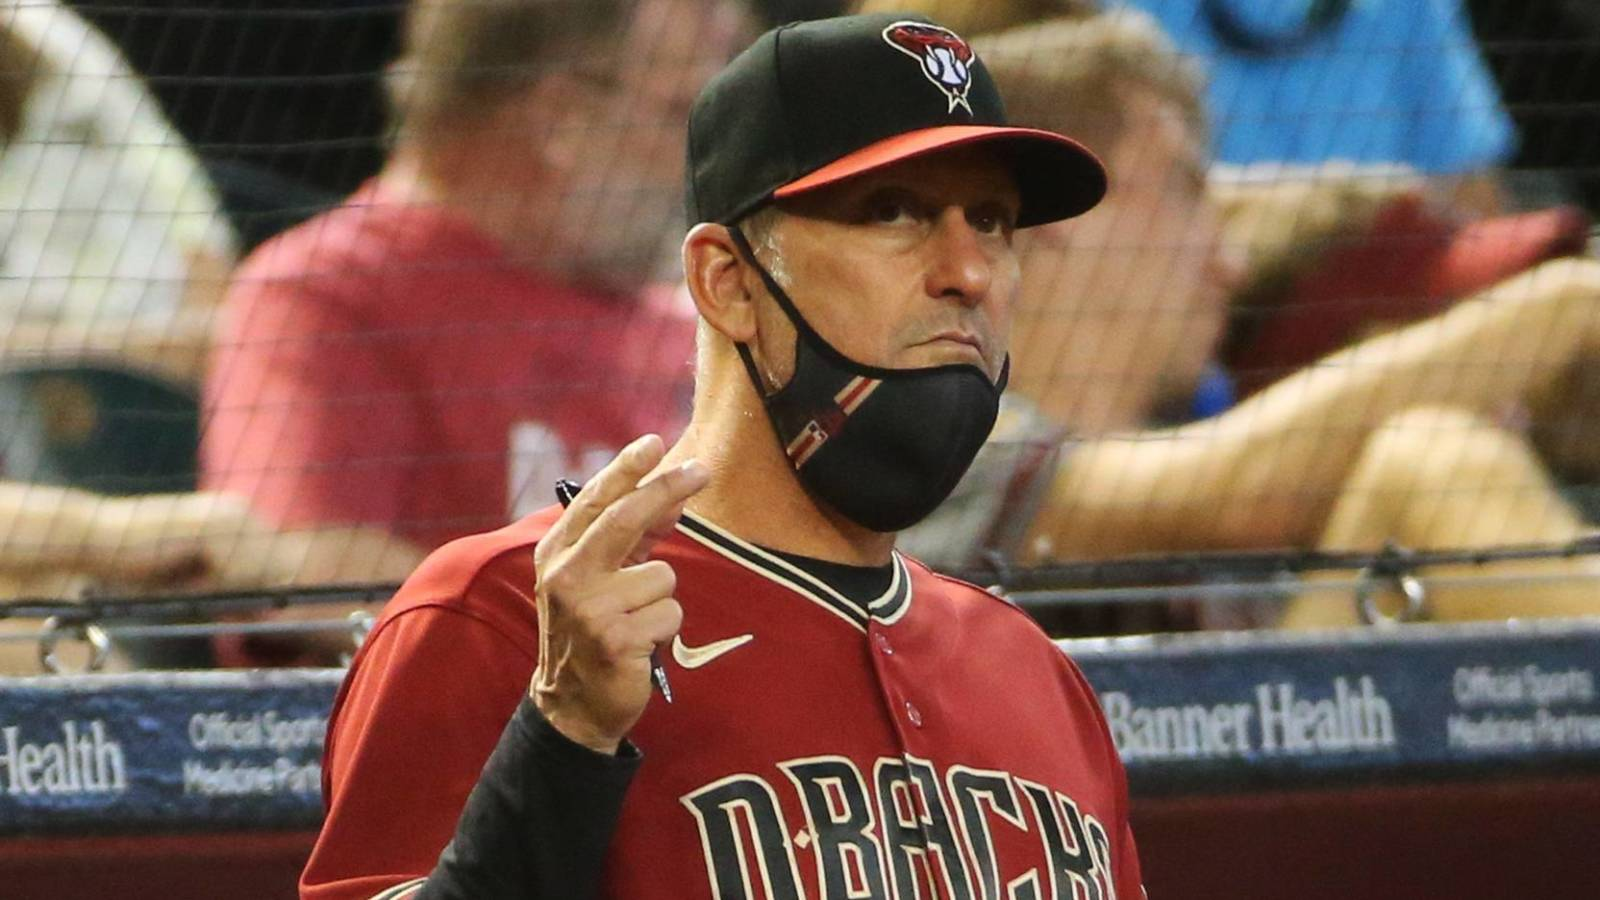 D-backs set new record for consecutive losses on the road